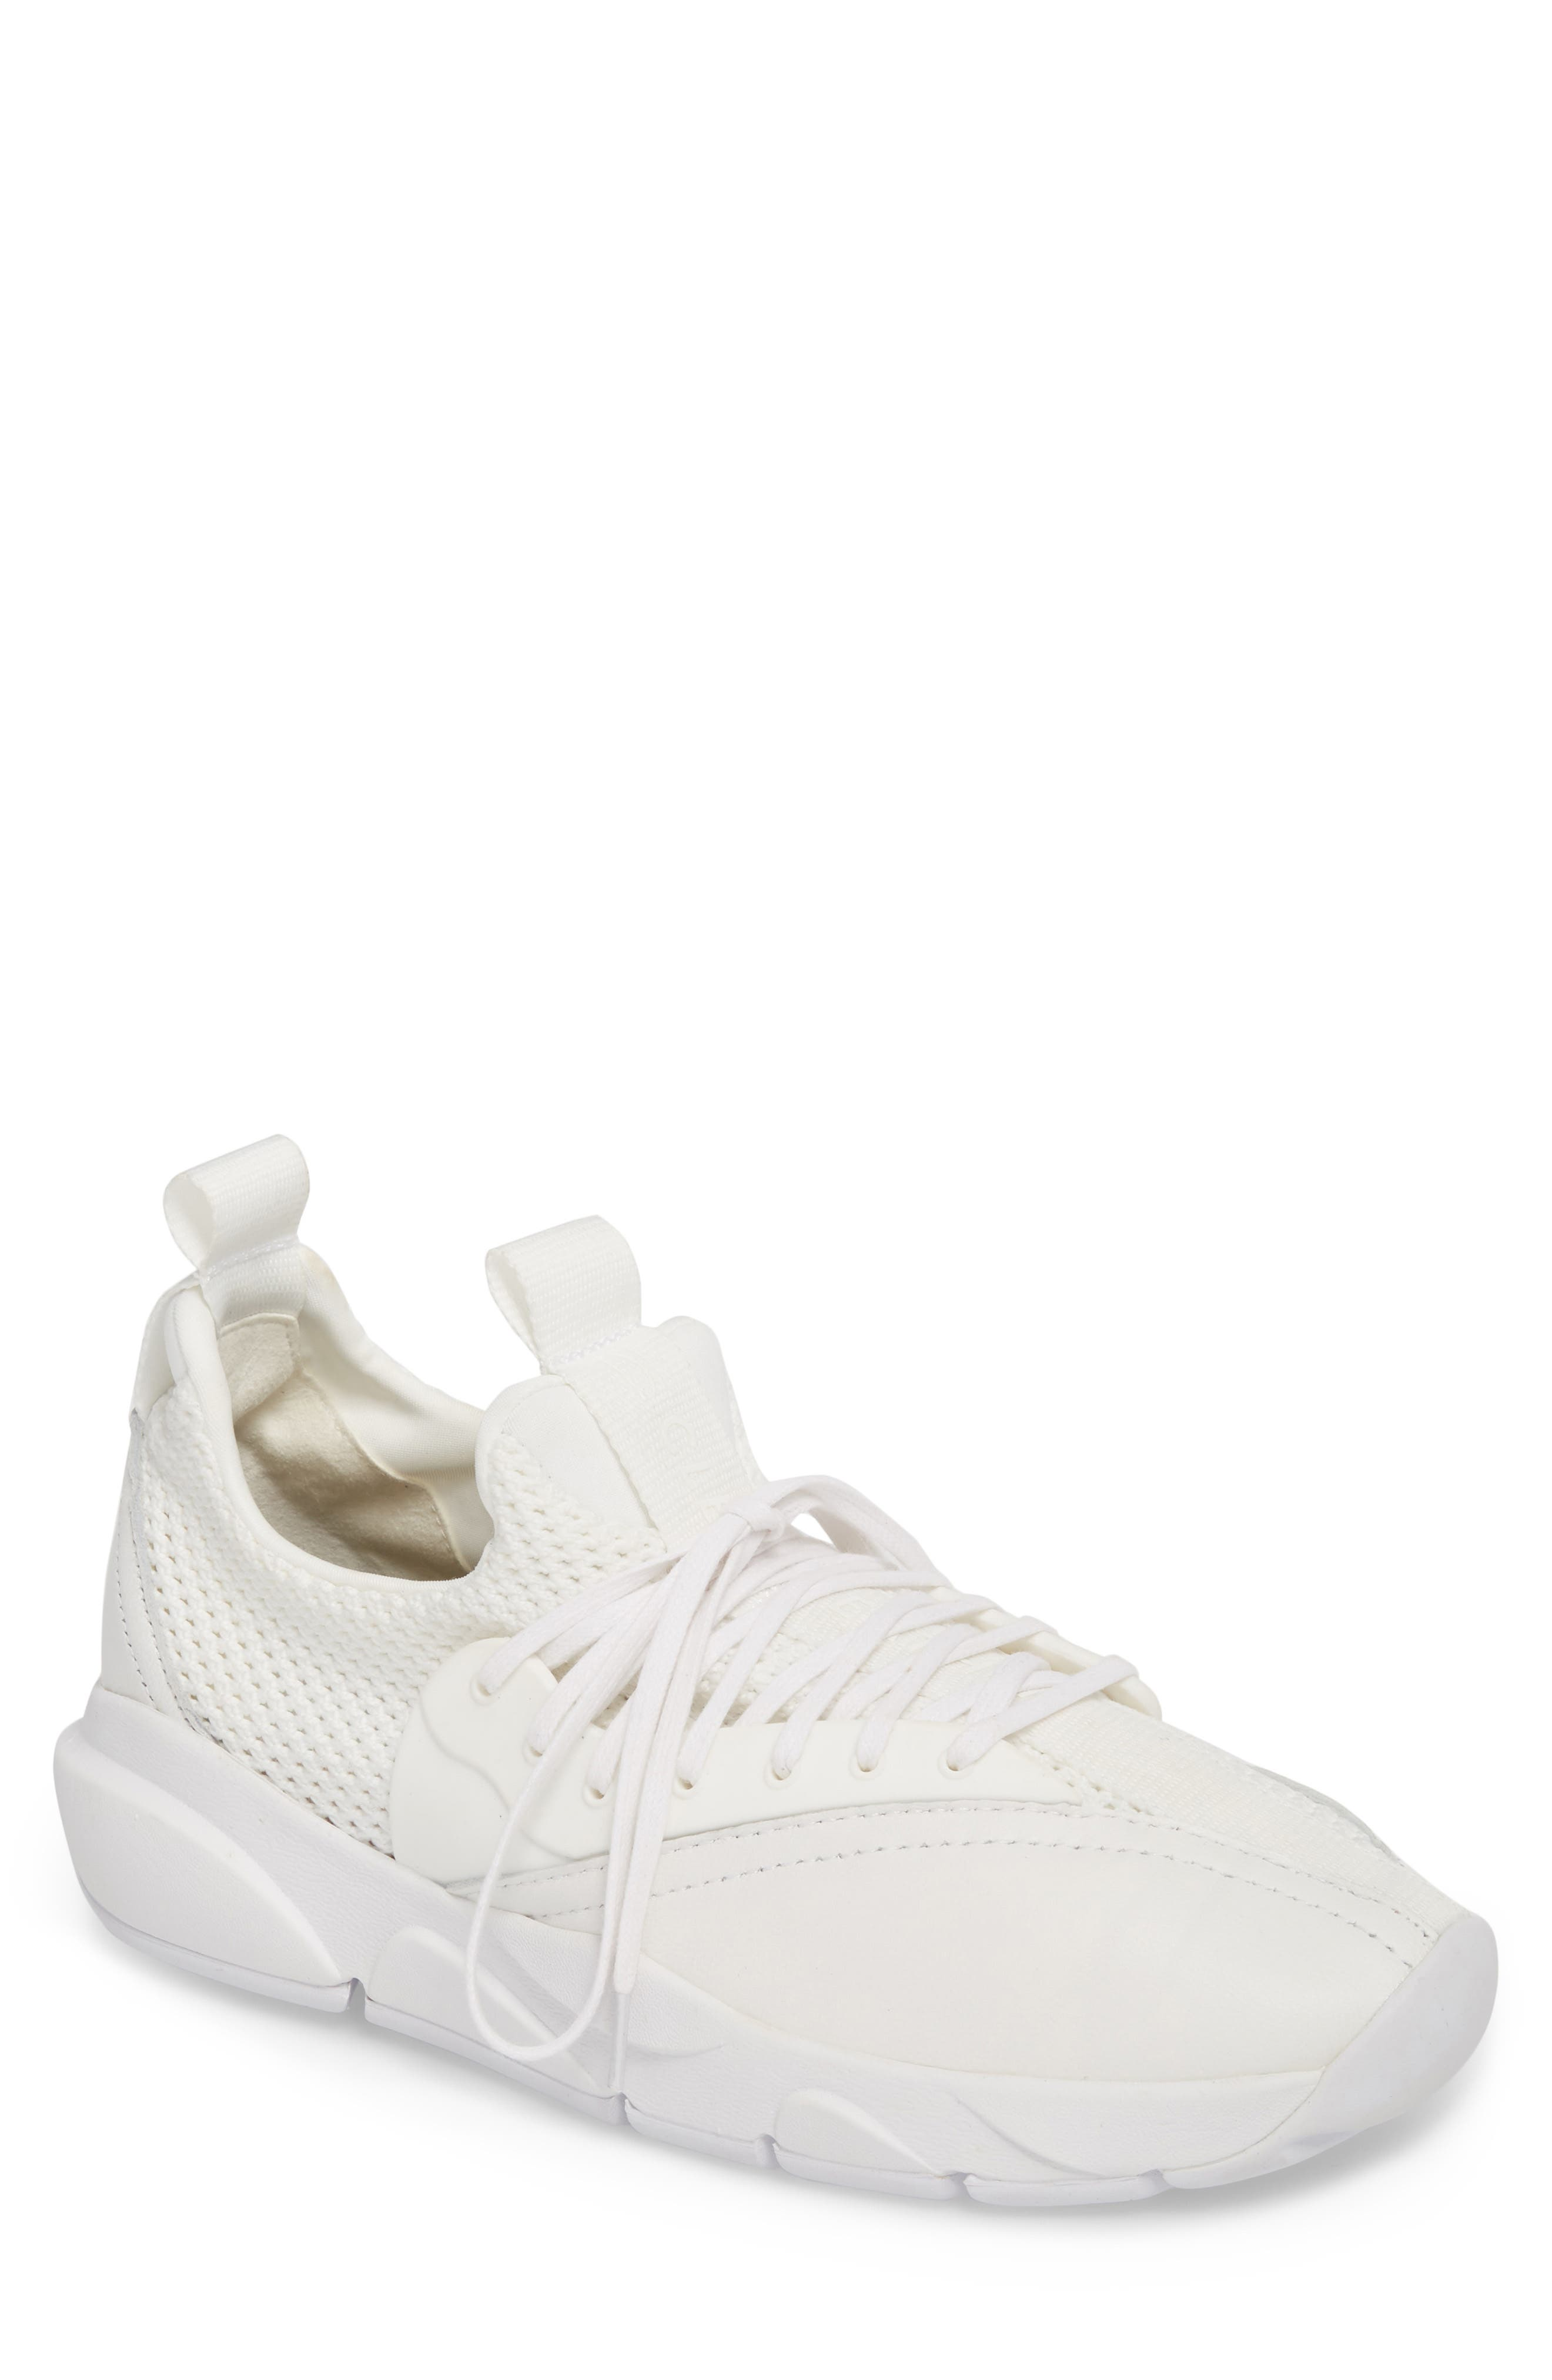 Clear Weather The Cloud Stryke Sneaker,                         Main,                         color, White Hawk